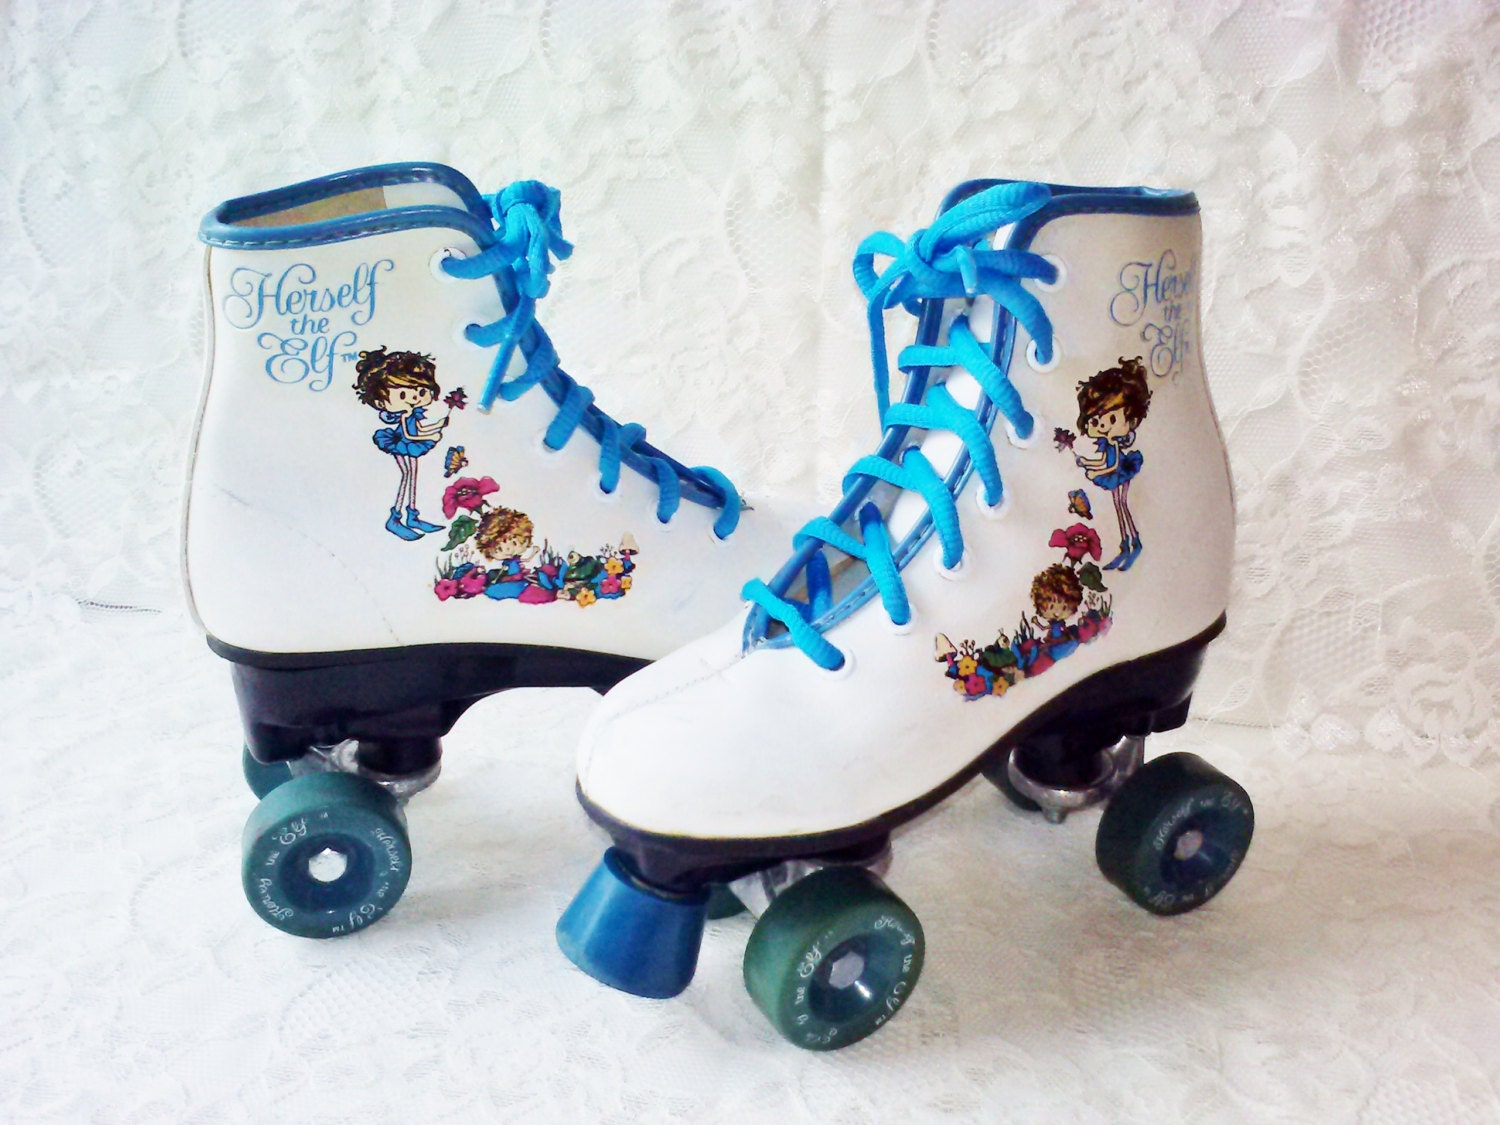 Roller shoes perth - Girl S Roller Skates Boot Type Vintage White Blue Leather Herself The Elf New Laces Blue Toe Stops Precision Wheels Great Condition Estate